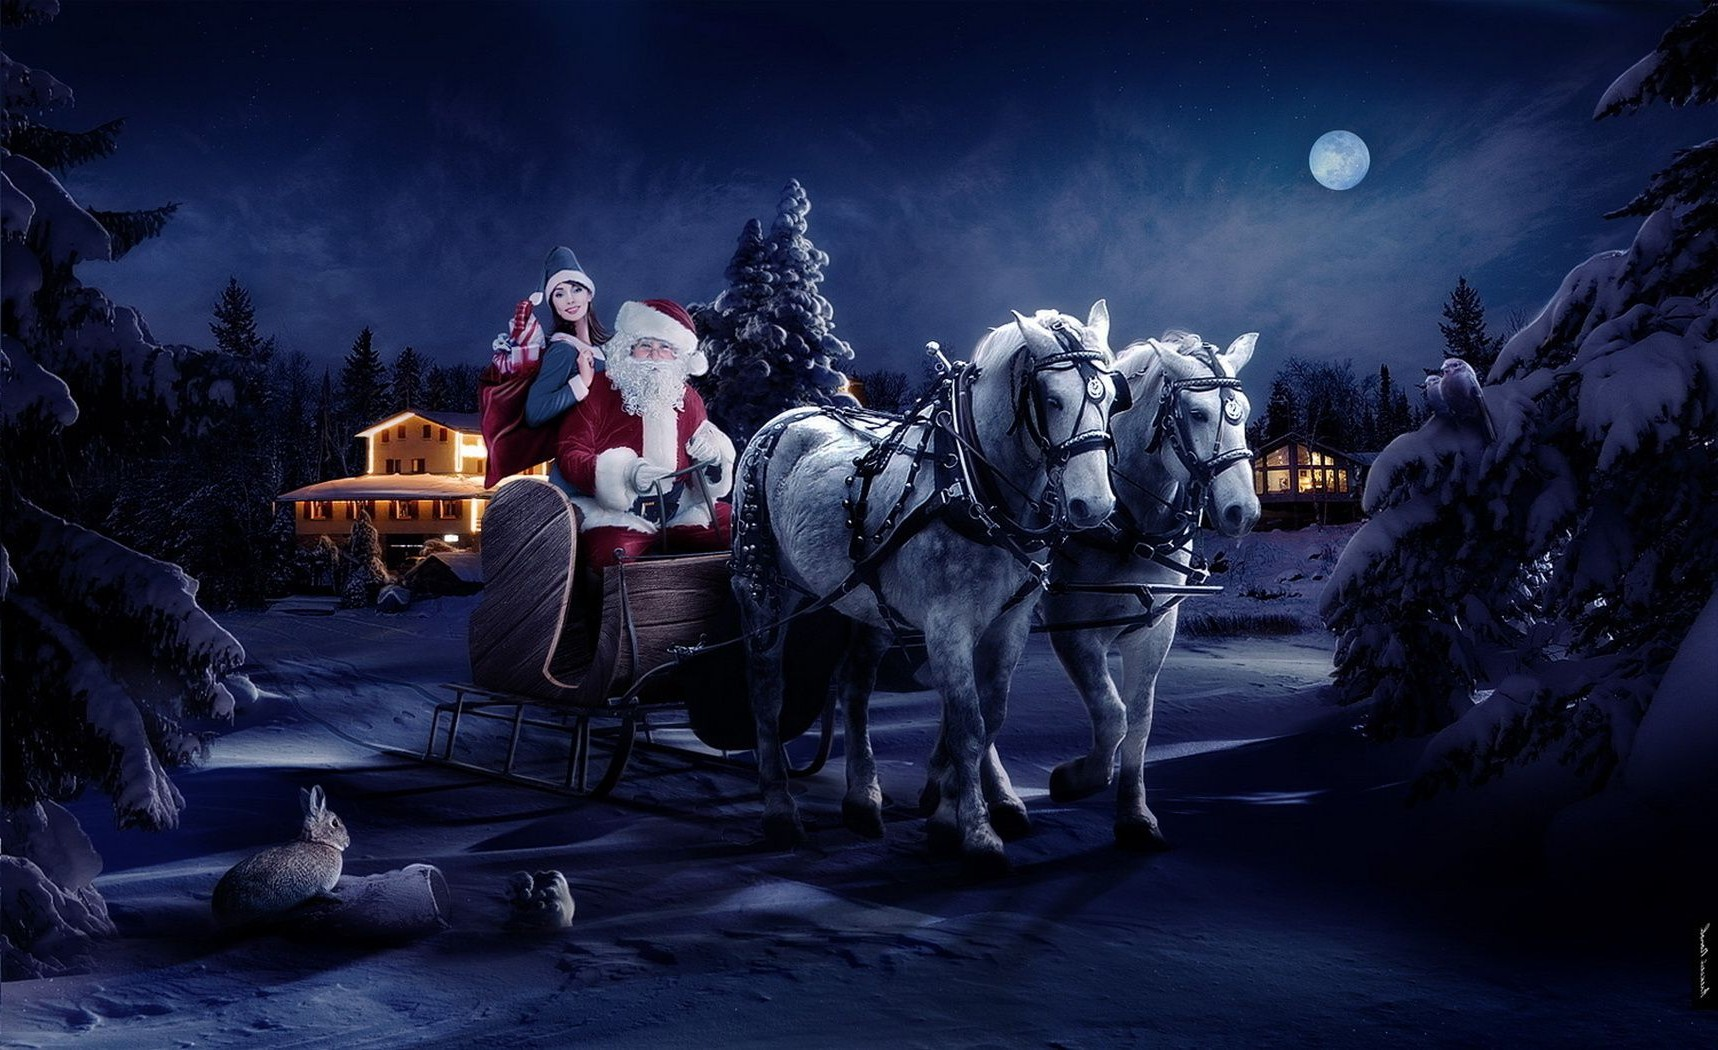 the moon is Santa Claus of the horse new year's night